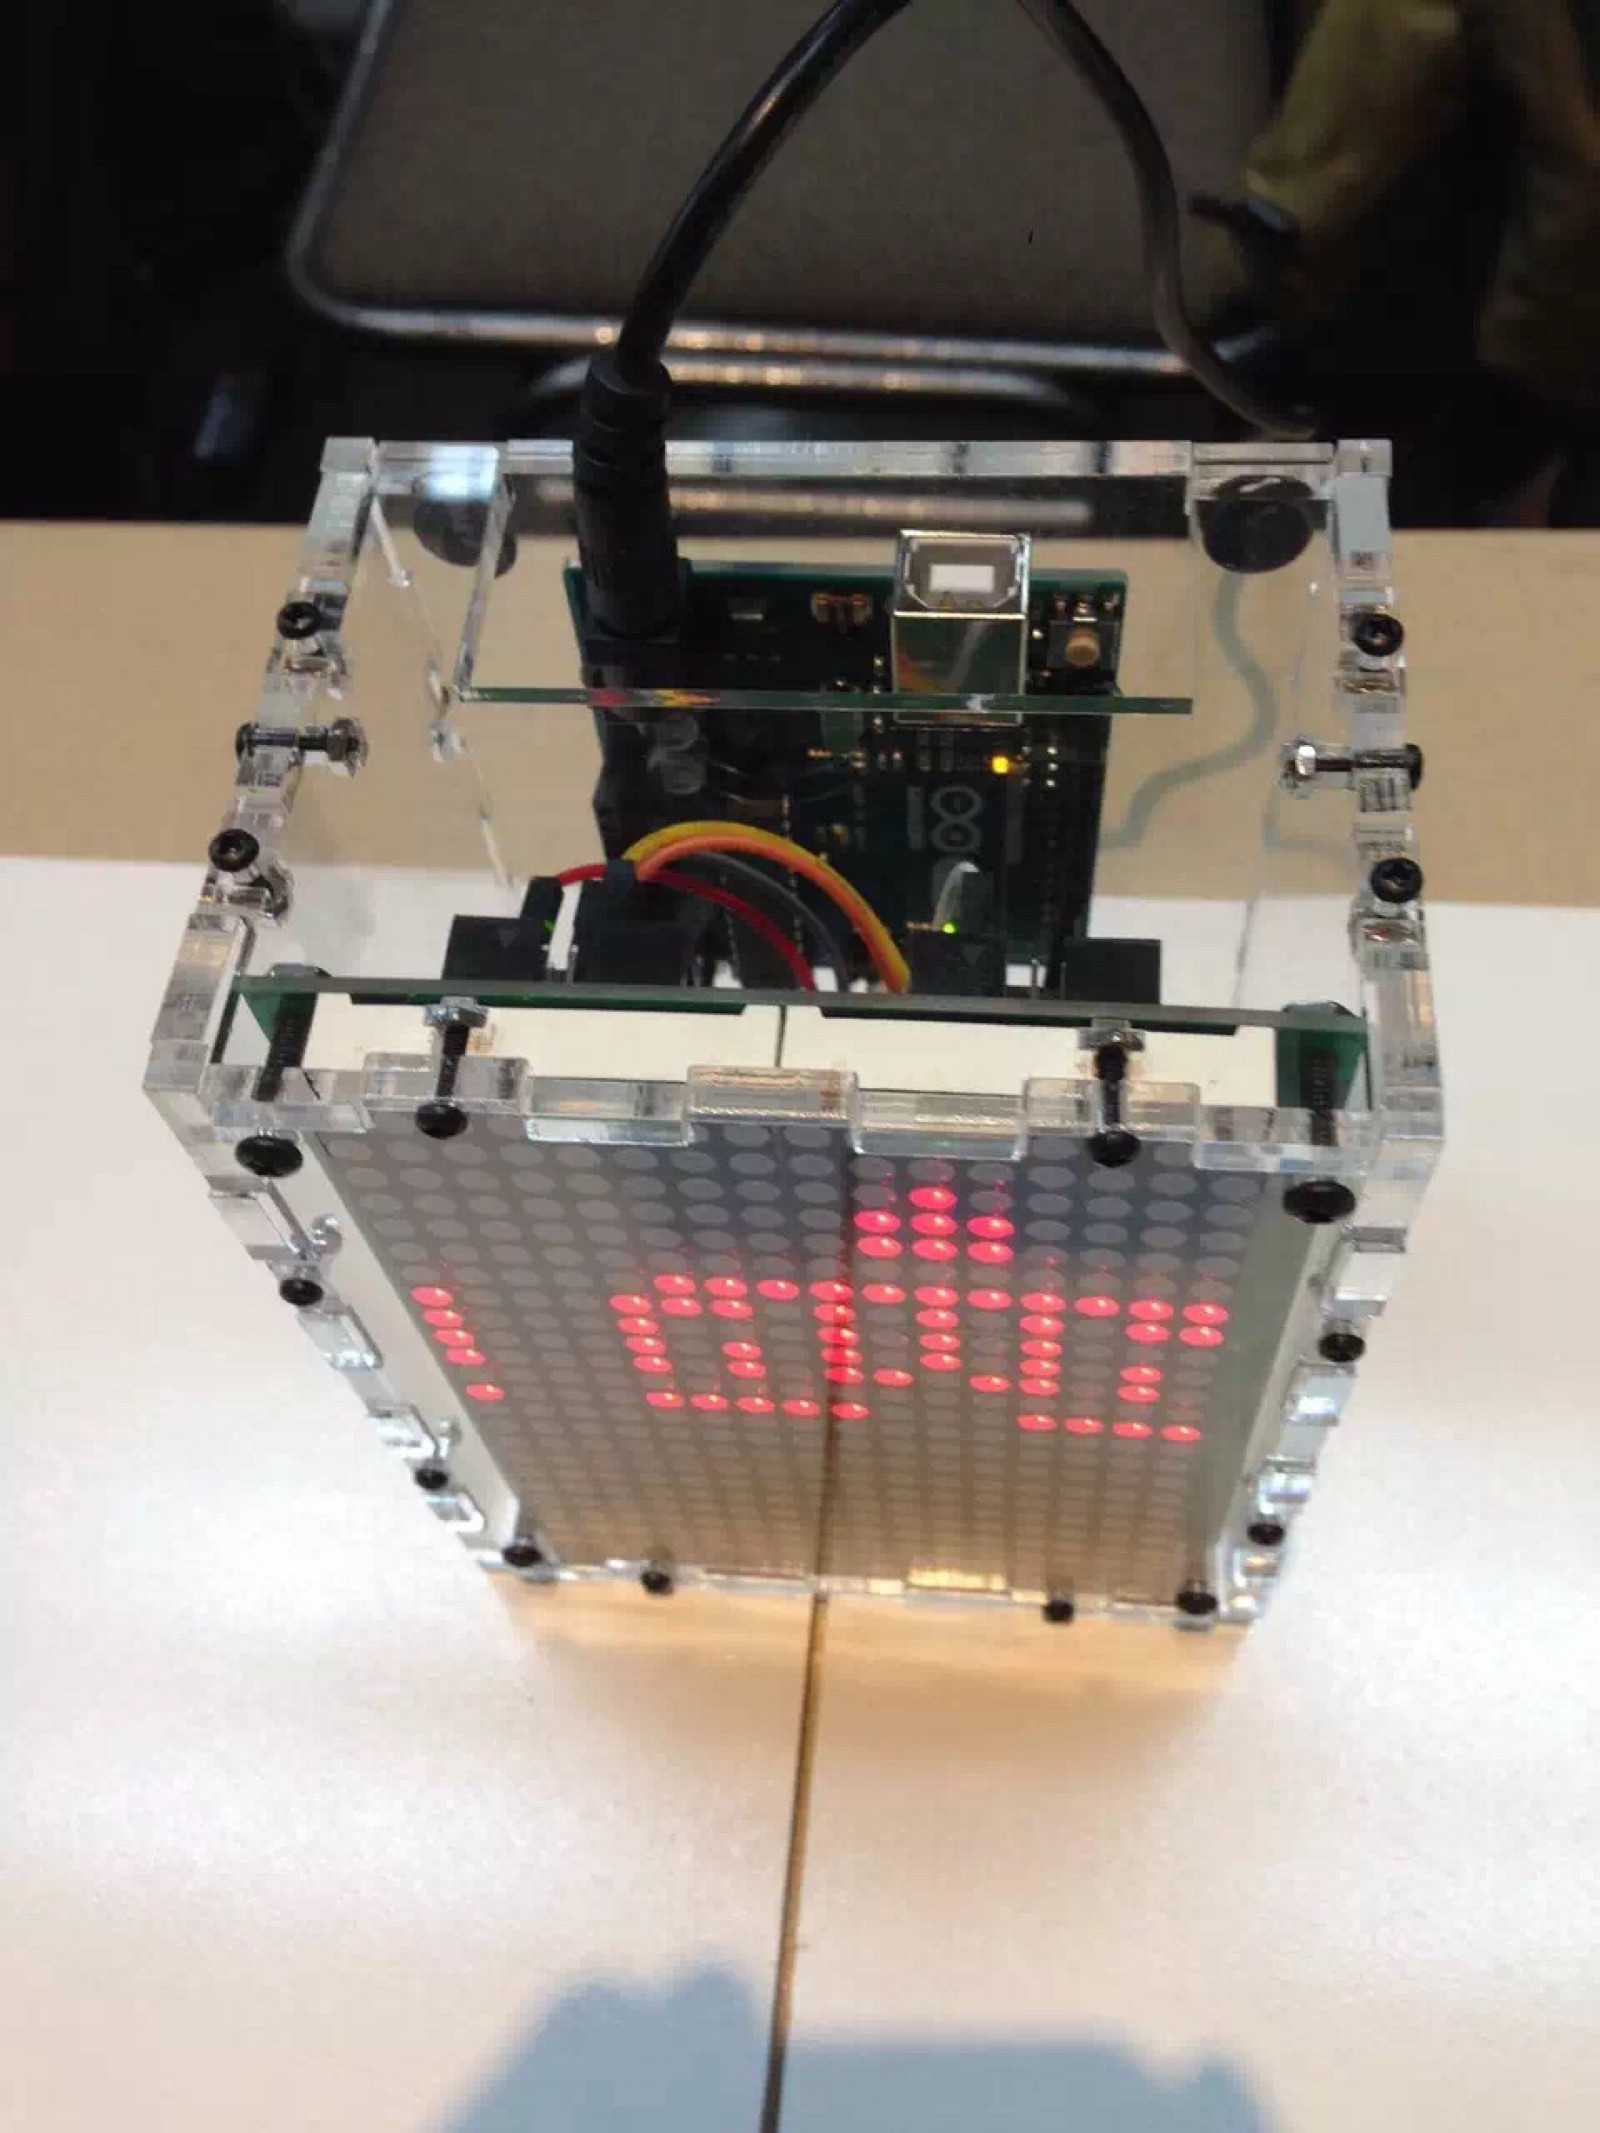 How To Read Pins On 8x8 Dot Matrix Led Grace Learns Iot Medium Display Circuit Double At Robot Show In Seattle